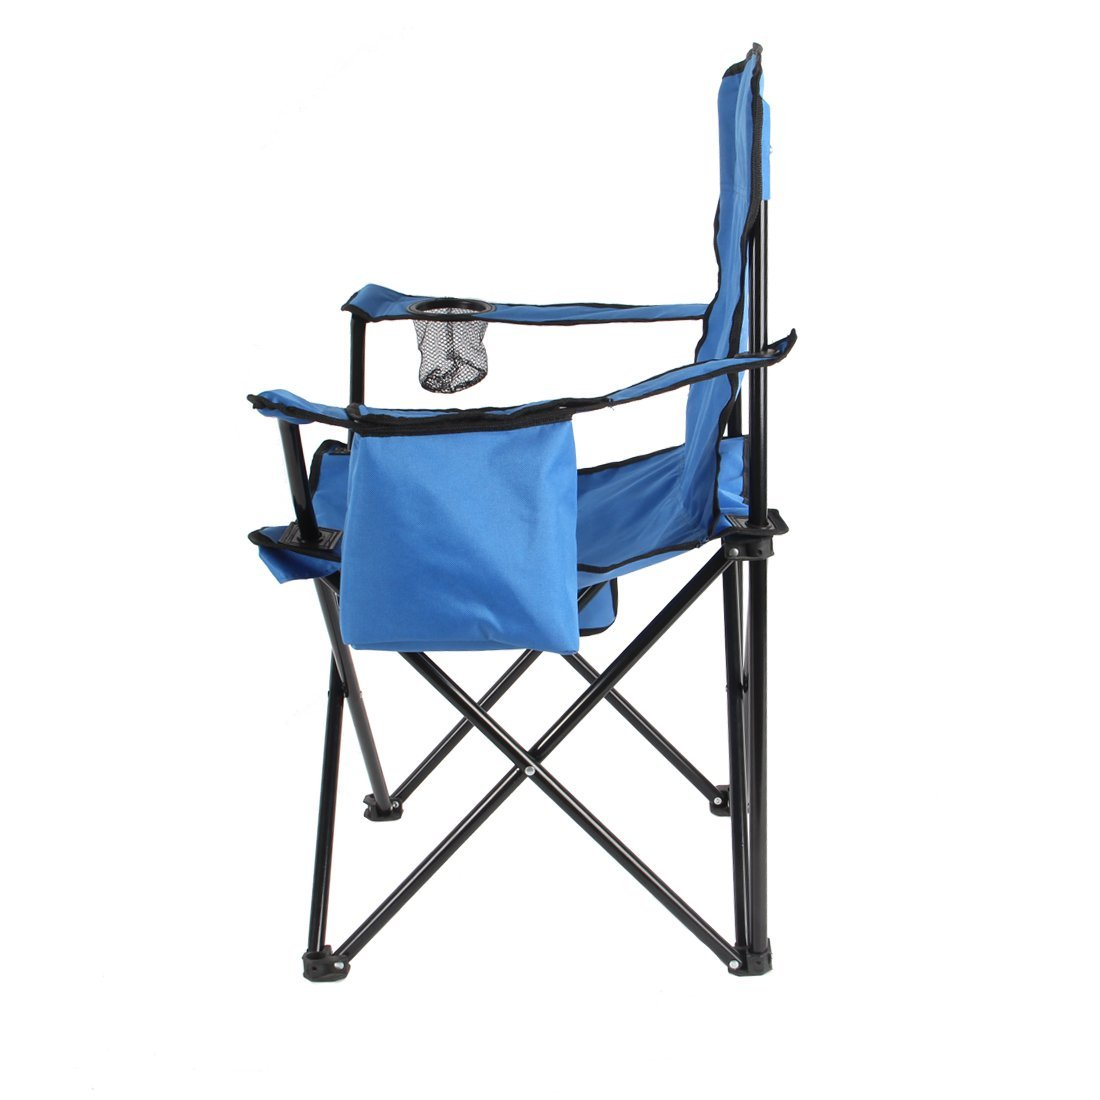 Camping Chair With Canopy Fishing Camping Folding Beach Chair With Arm Adjustable Canopy Ice Bag Litter Caddie Buy Fishing Chair Fishing Chair With Adjustable Canopy Fishing